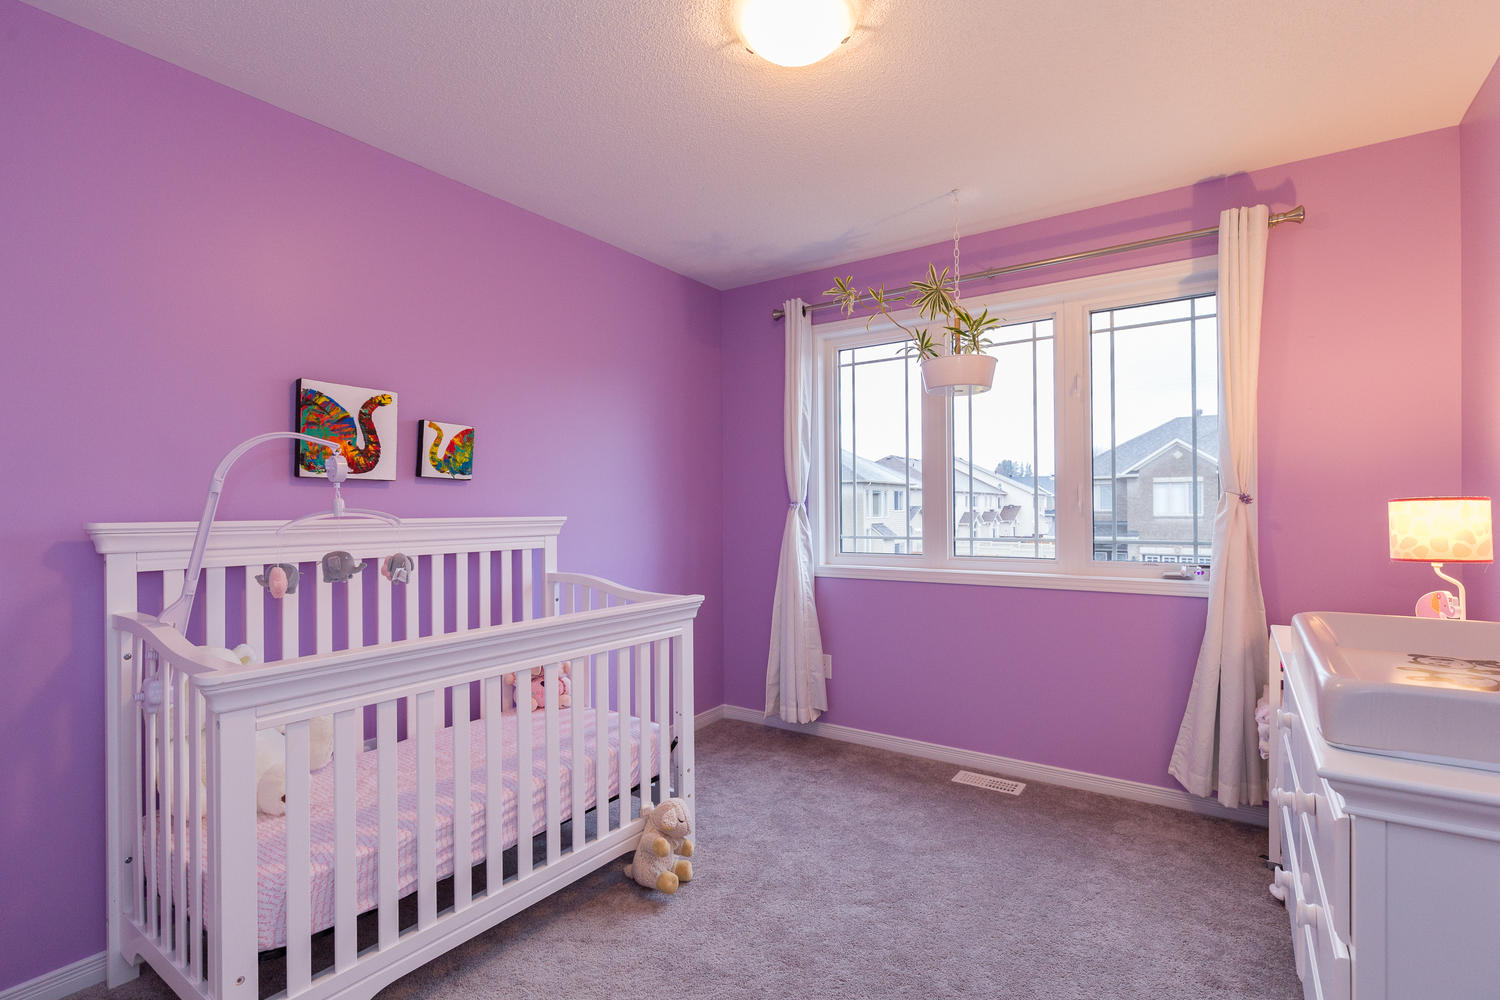 Third bedroom, currently used as a nursery.